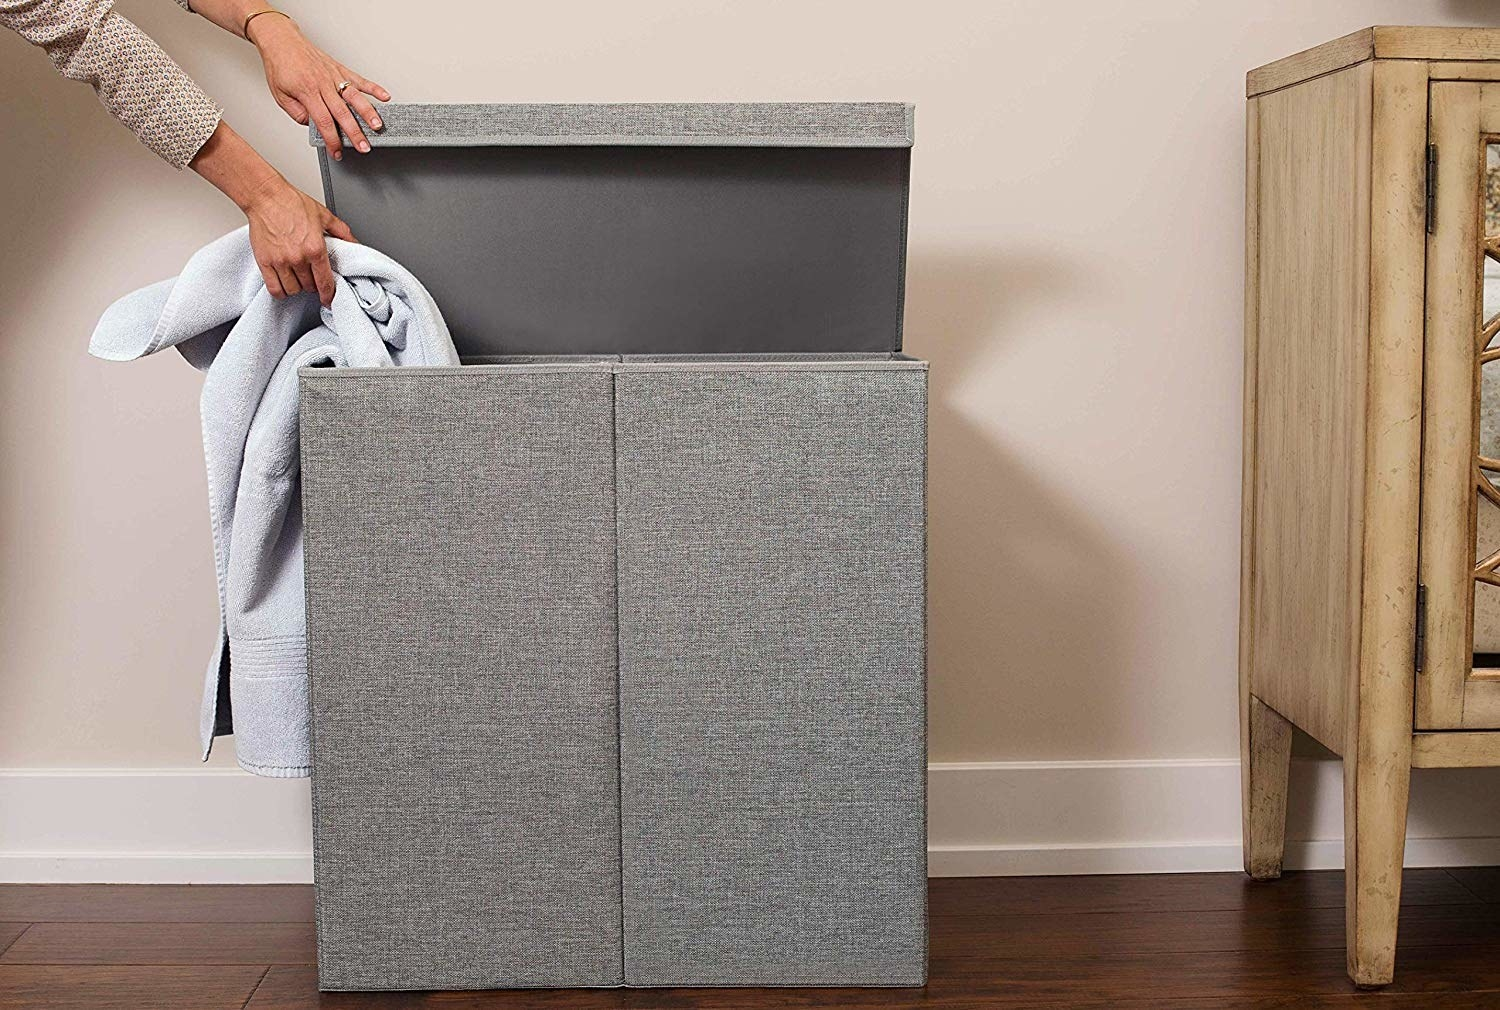 a person putting a towel into one side of the gray double hamper